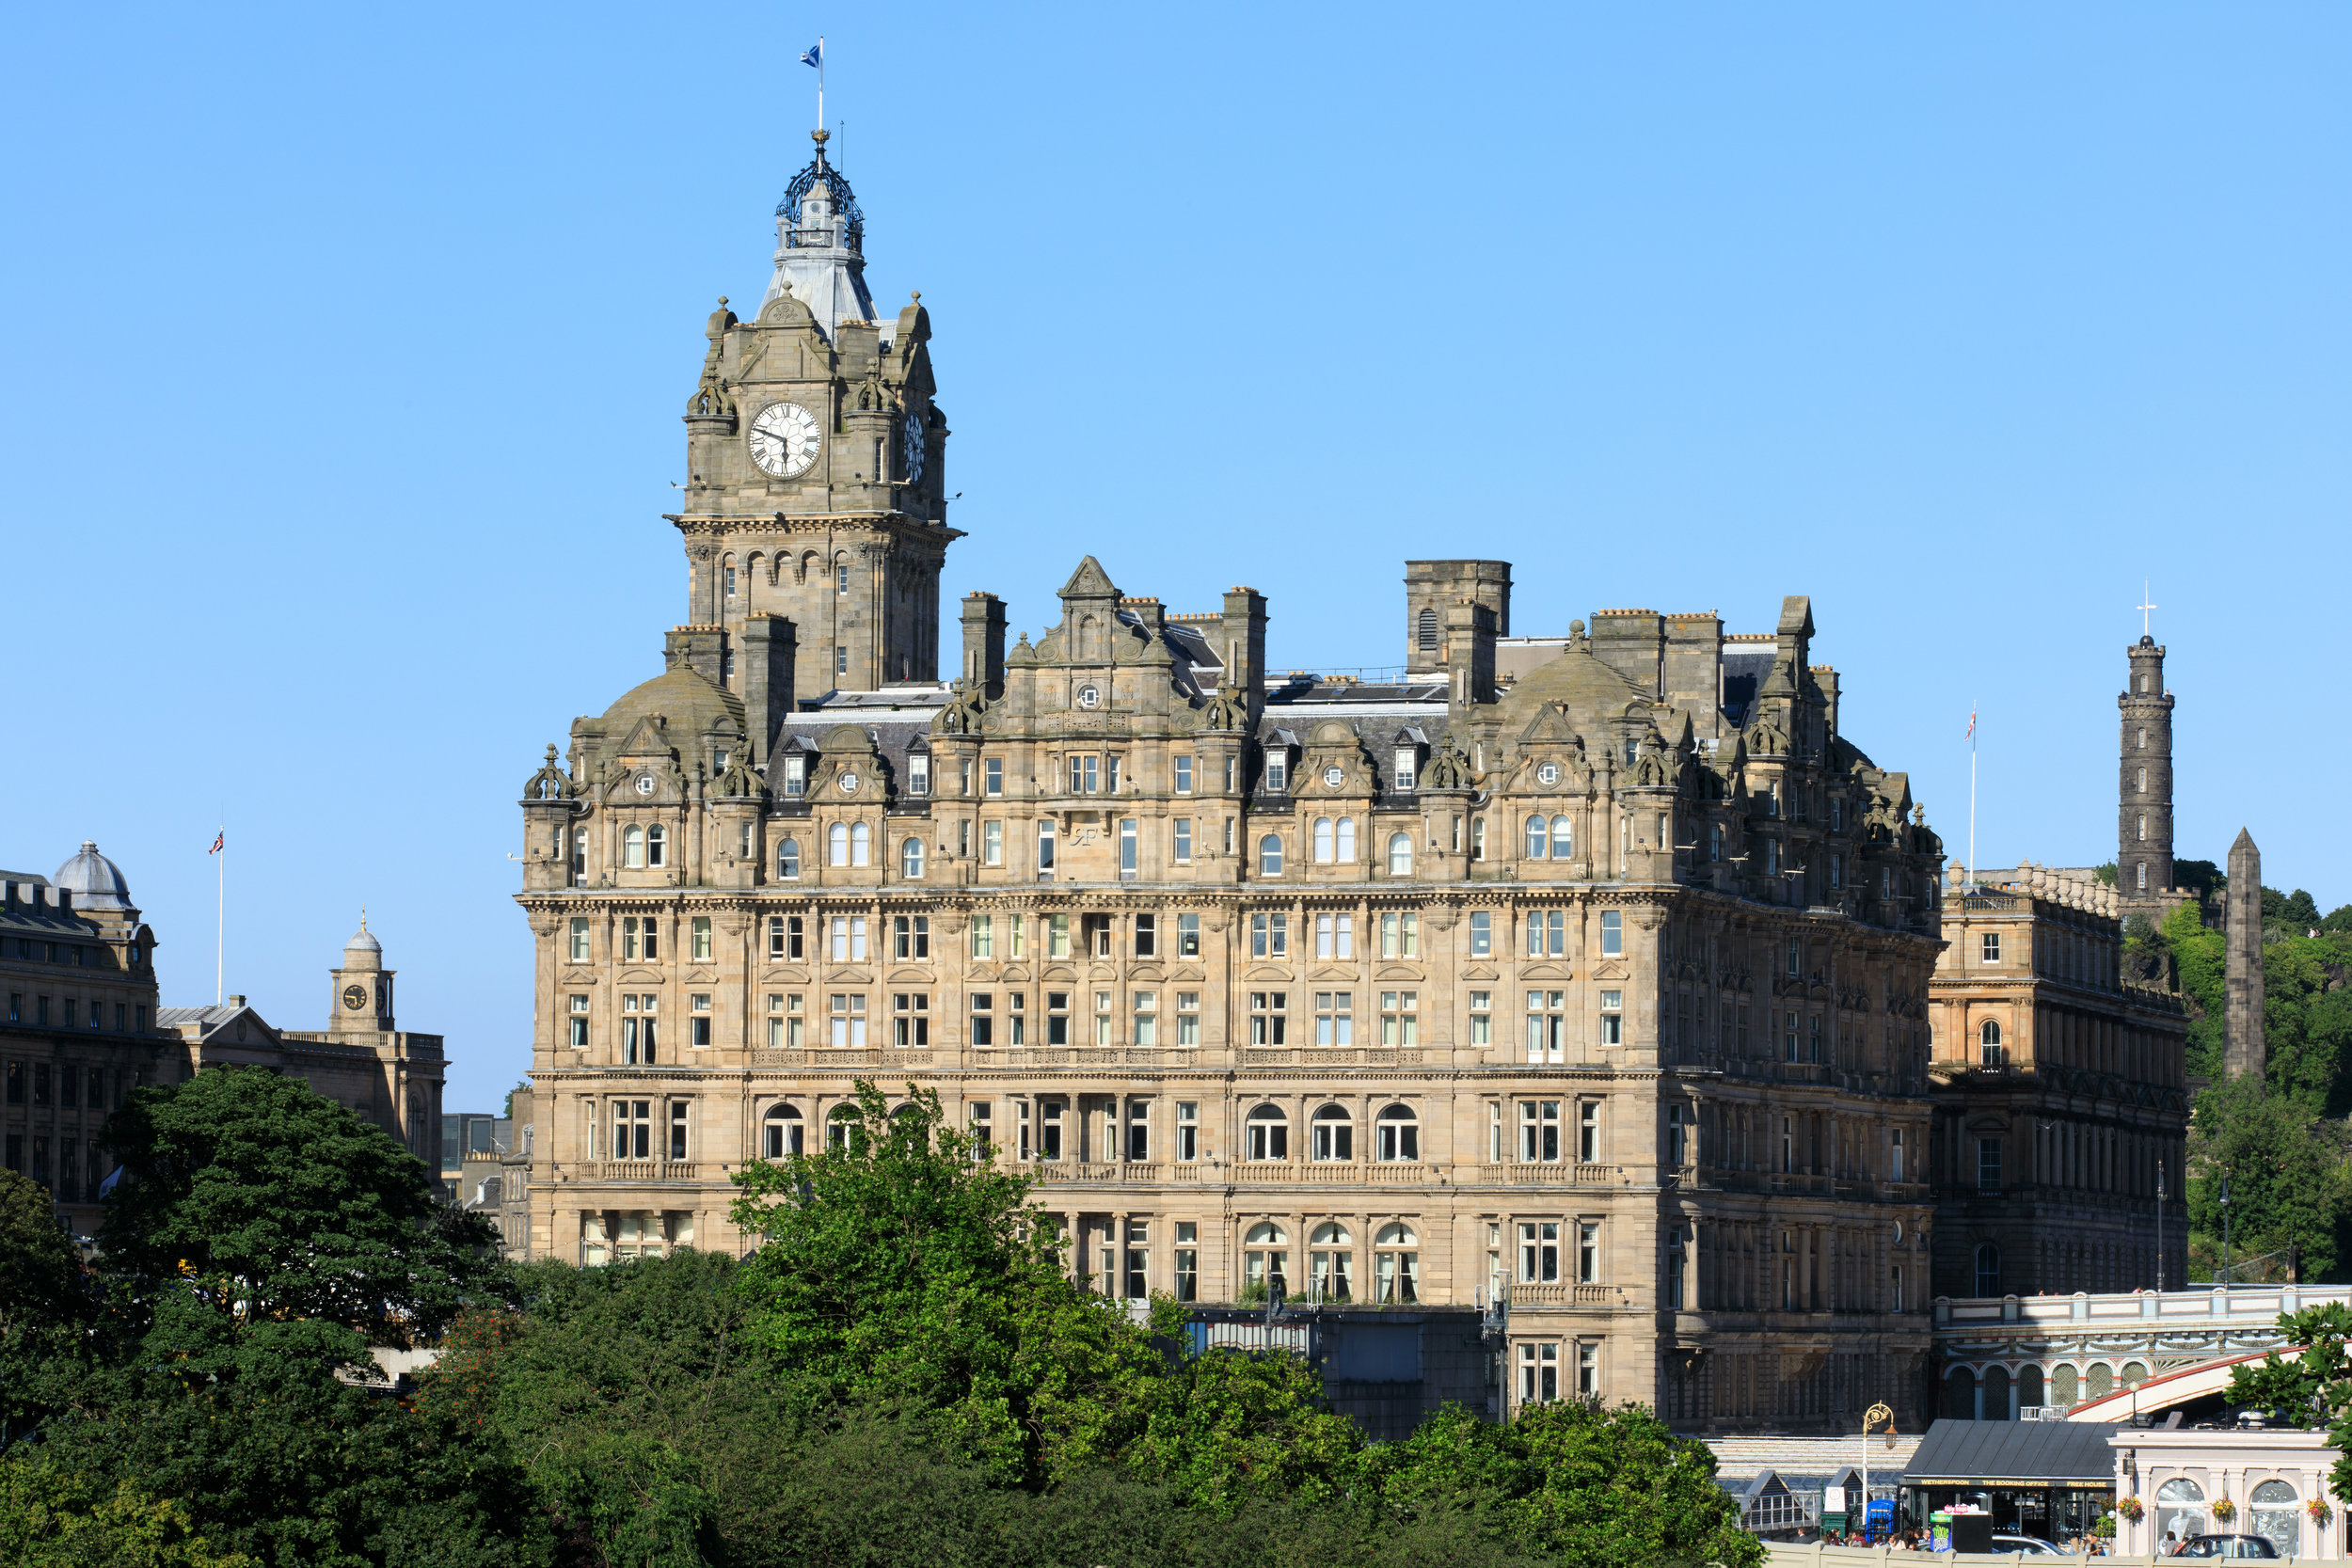 21 RFH The Balmoral - Facade 5530 Jul 17.JPG